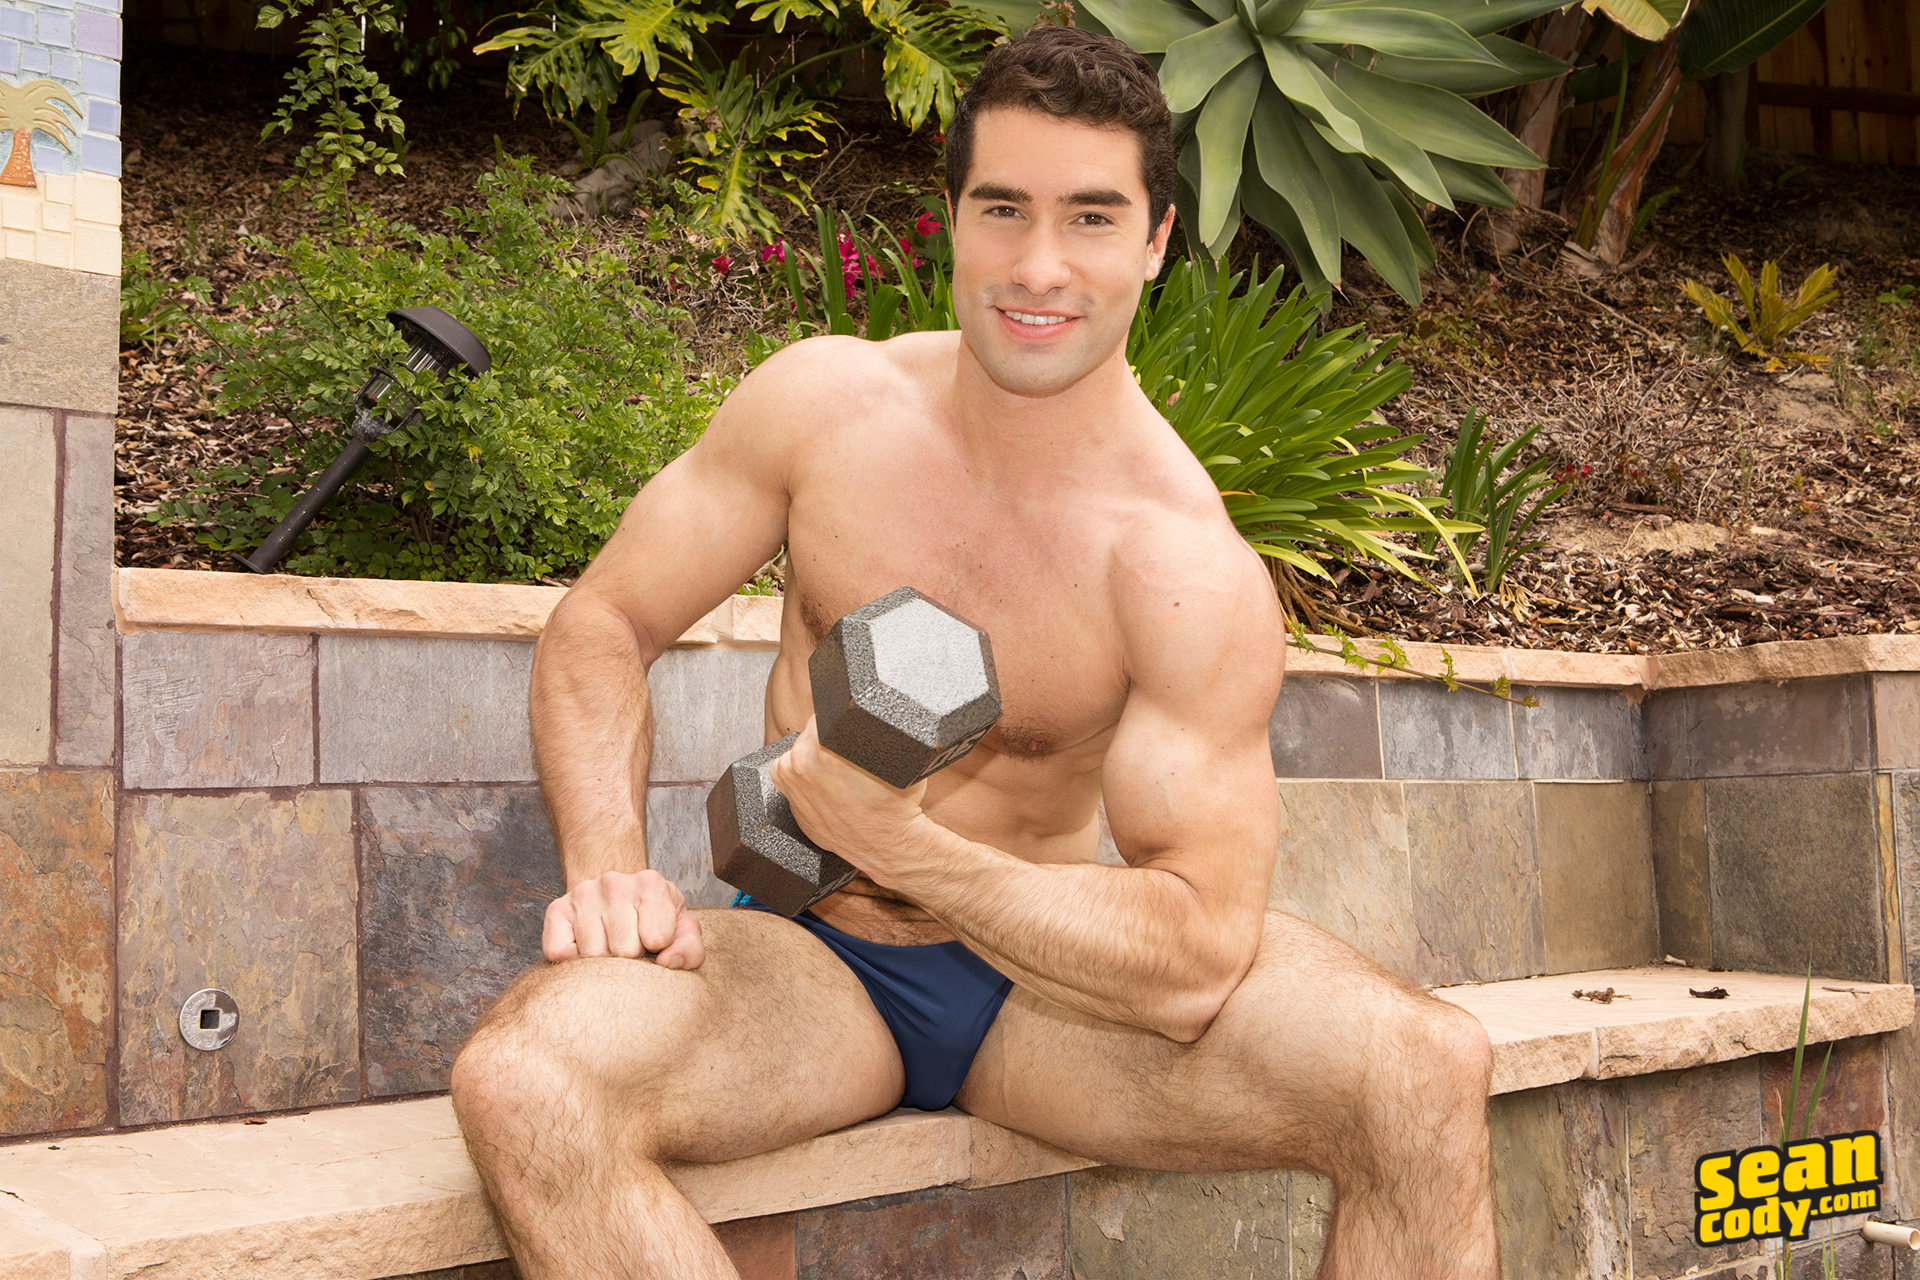 rafael sean cody jack off video